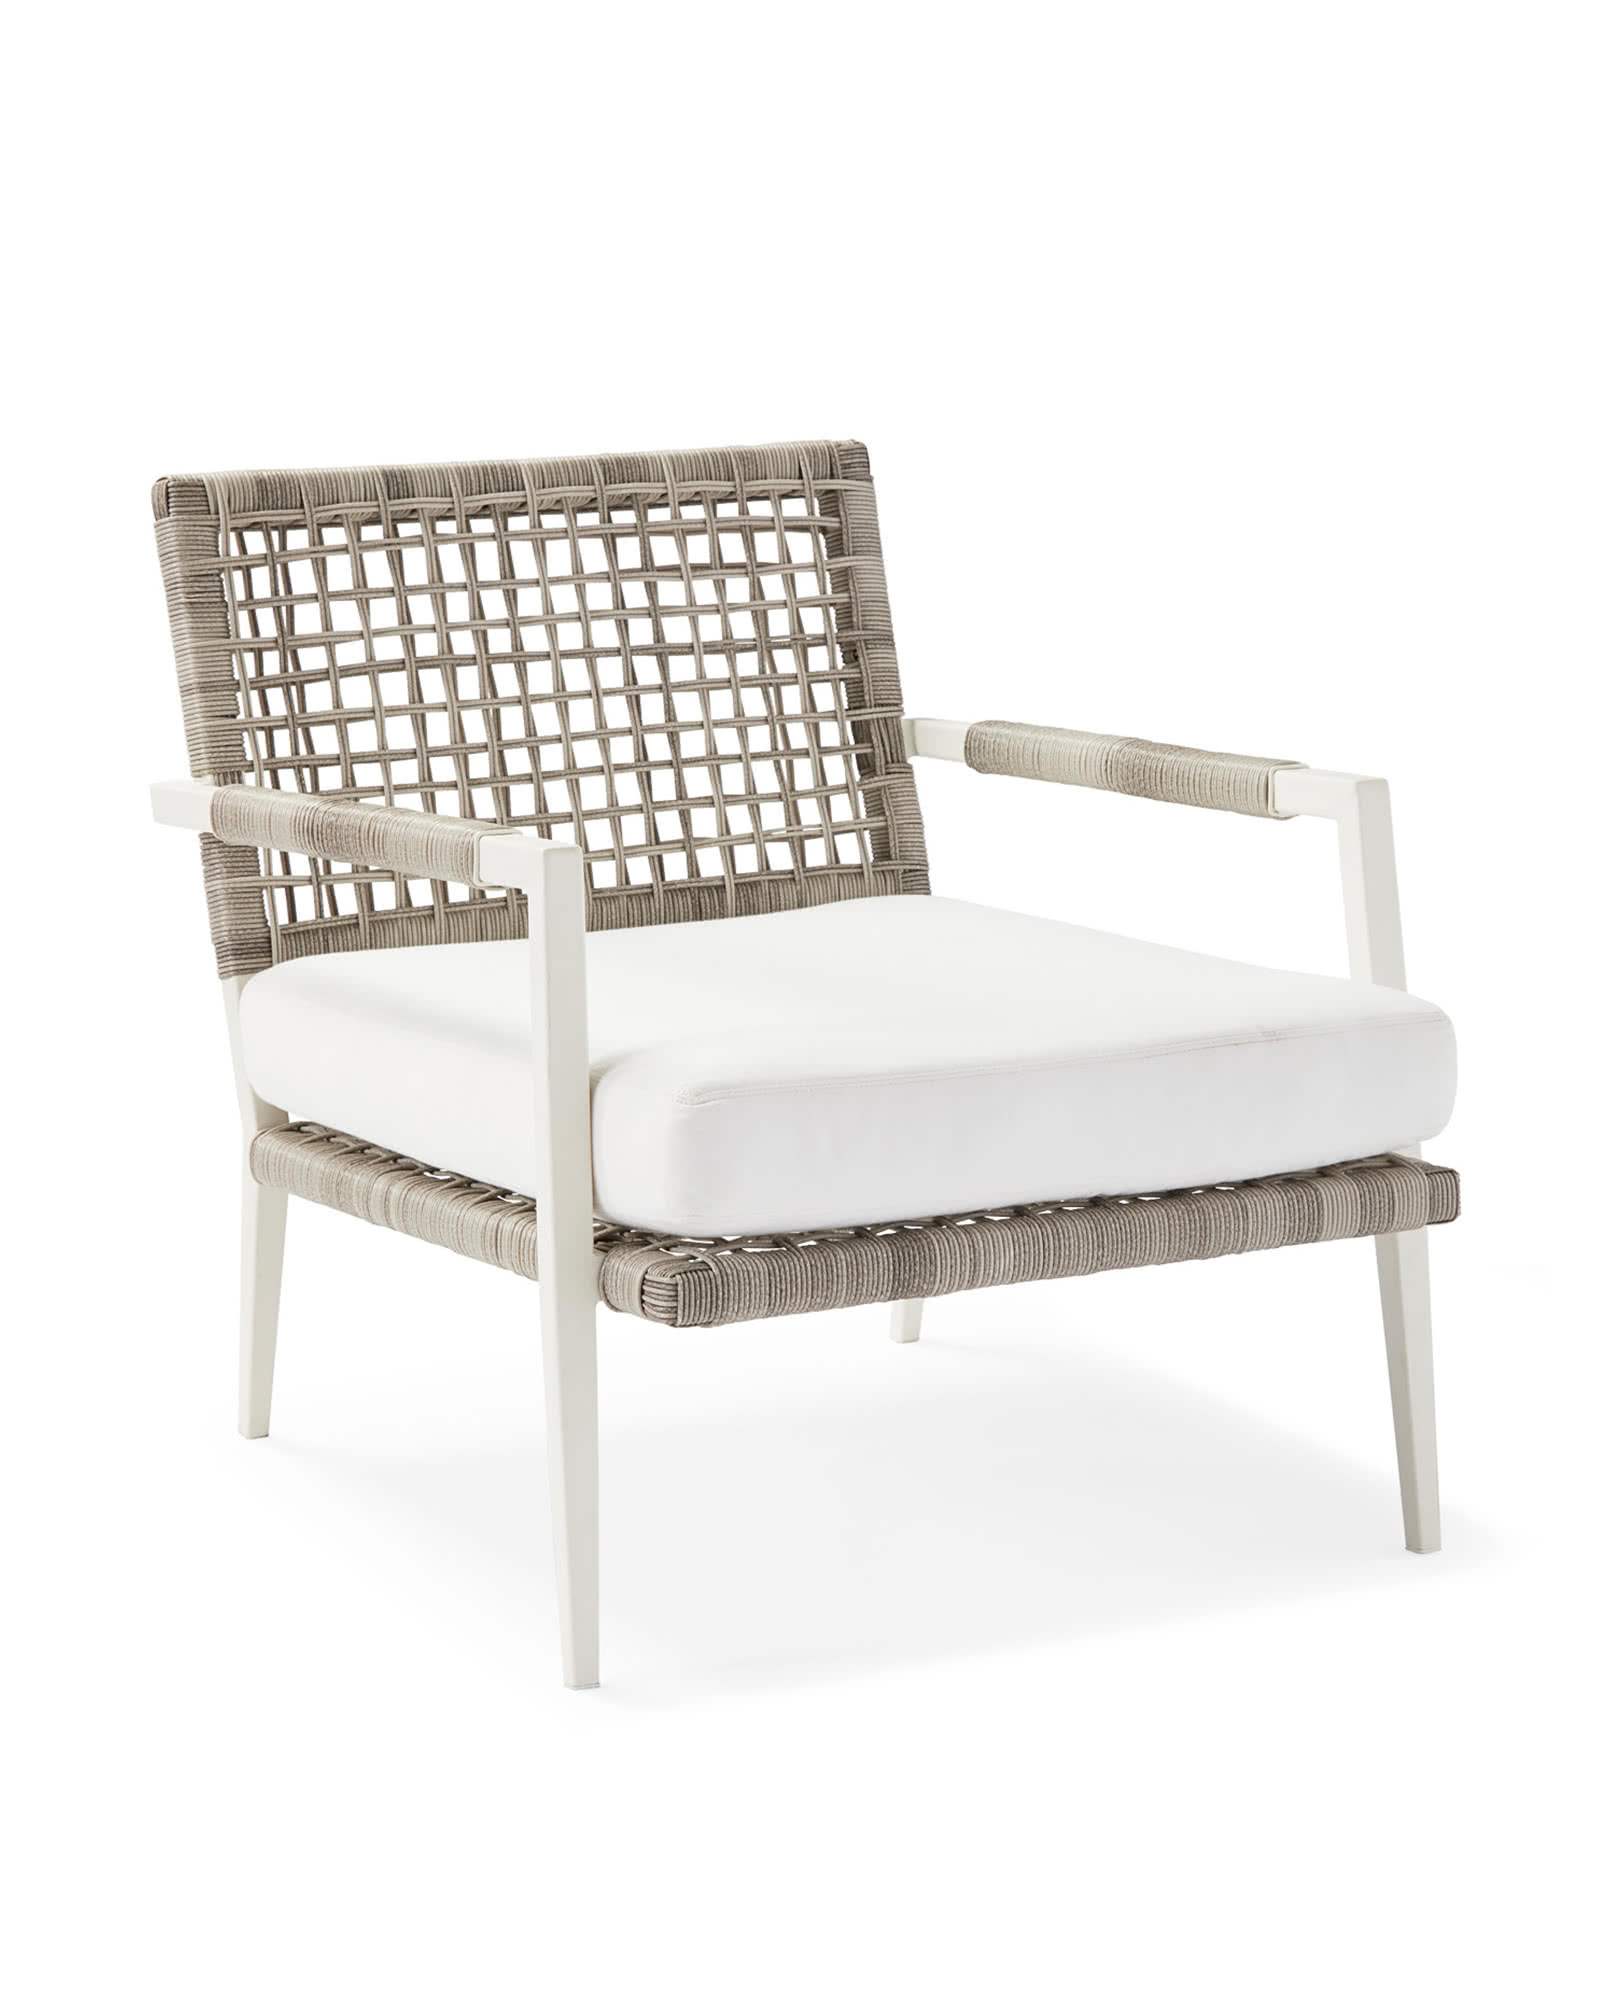 Waterfront Lounge Chair,